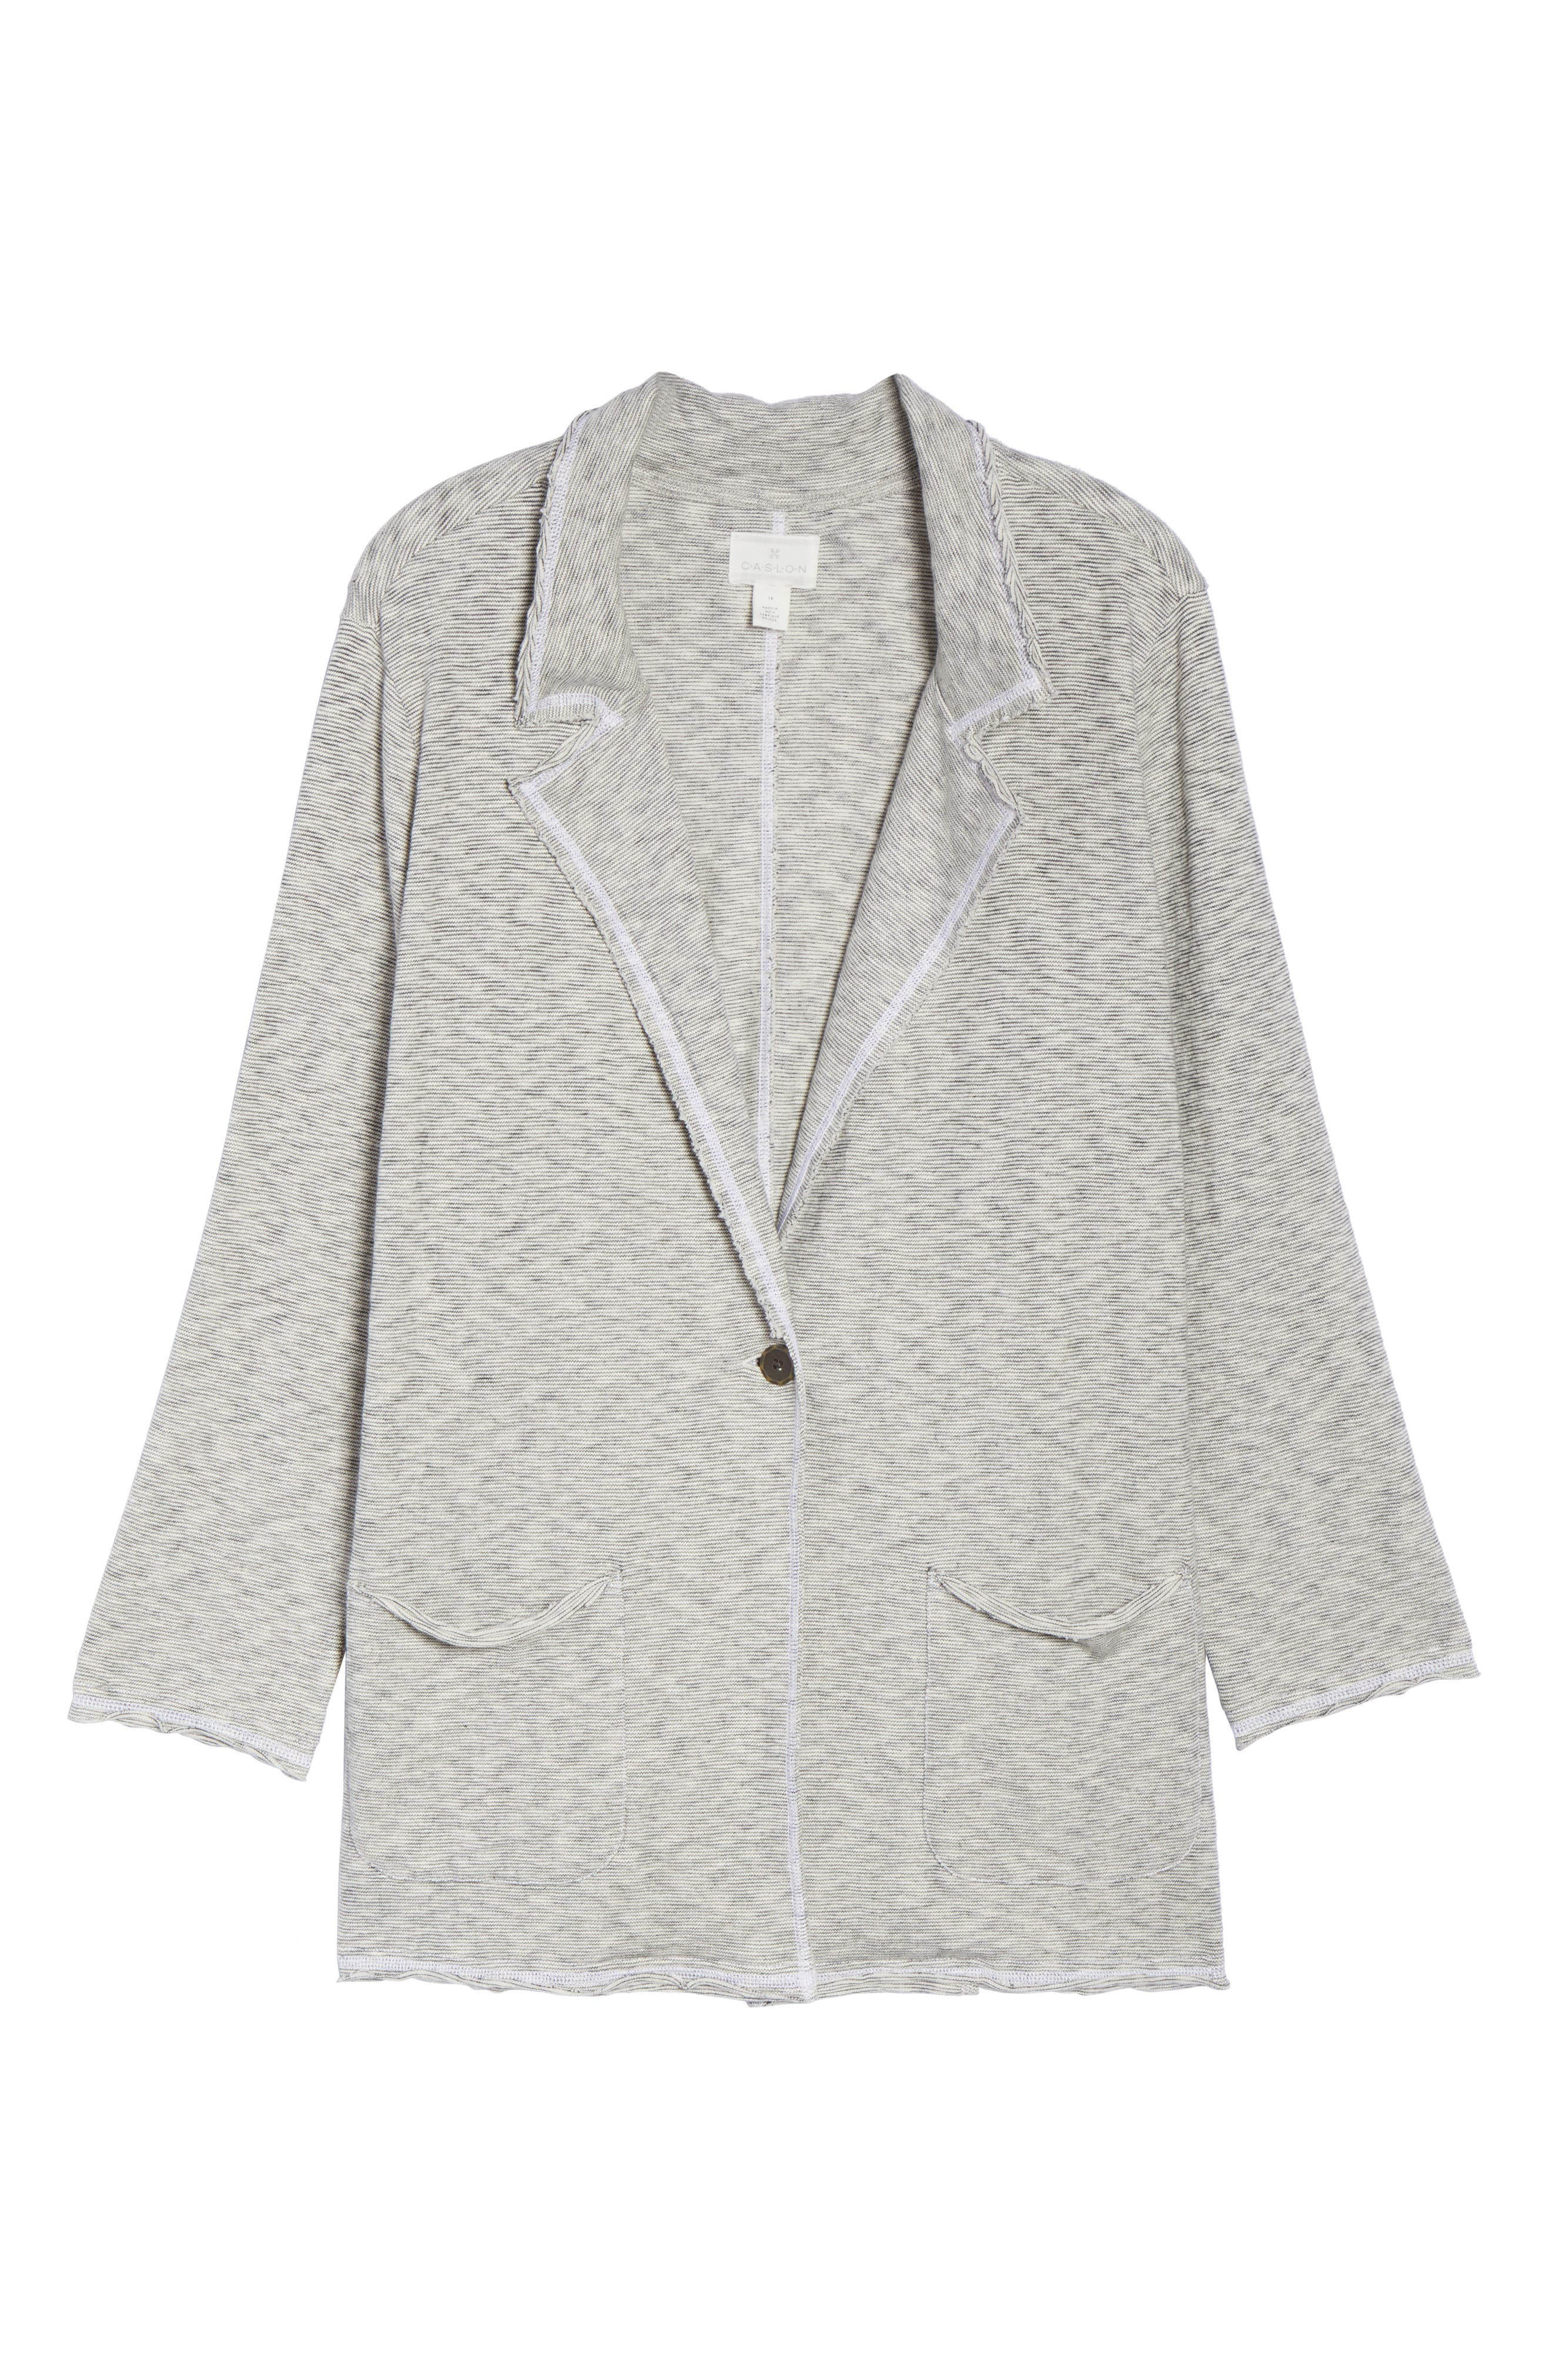 Knit Boyfriend Blazer,                             Alternate thumbnail 5, color,                             001